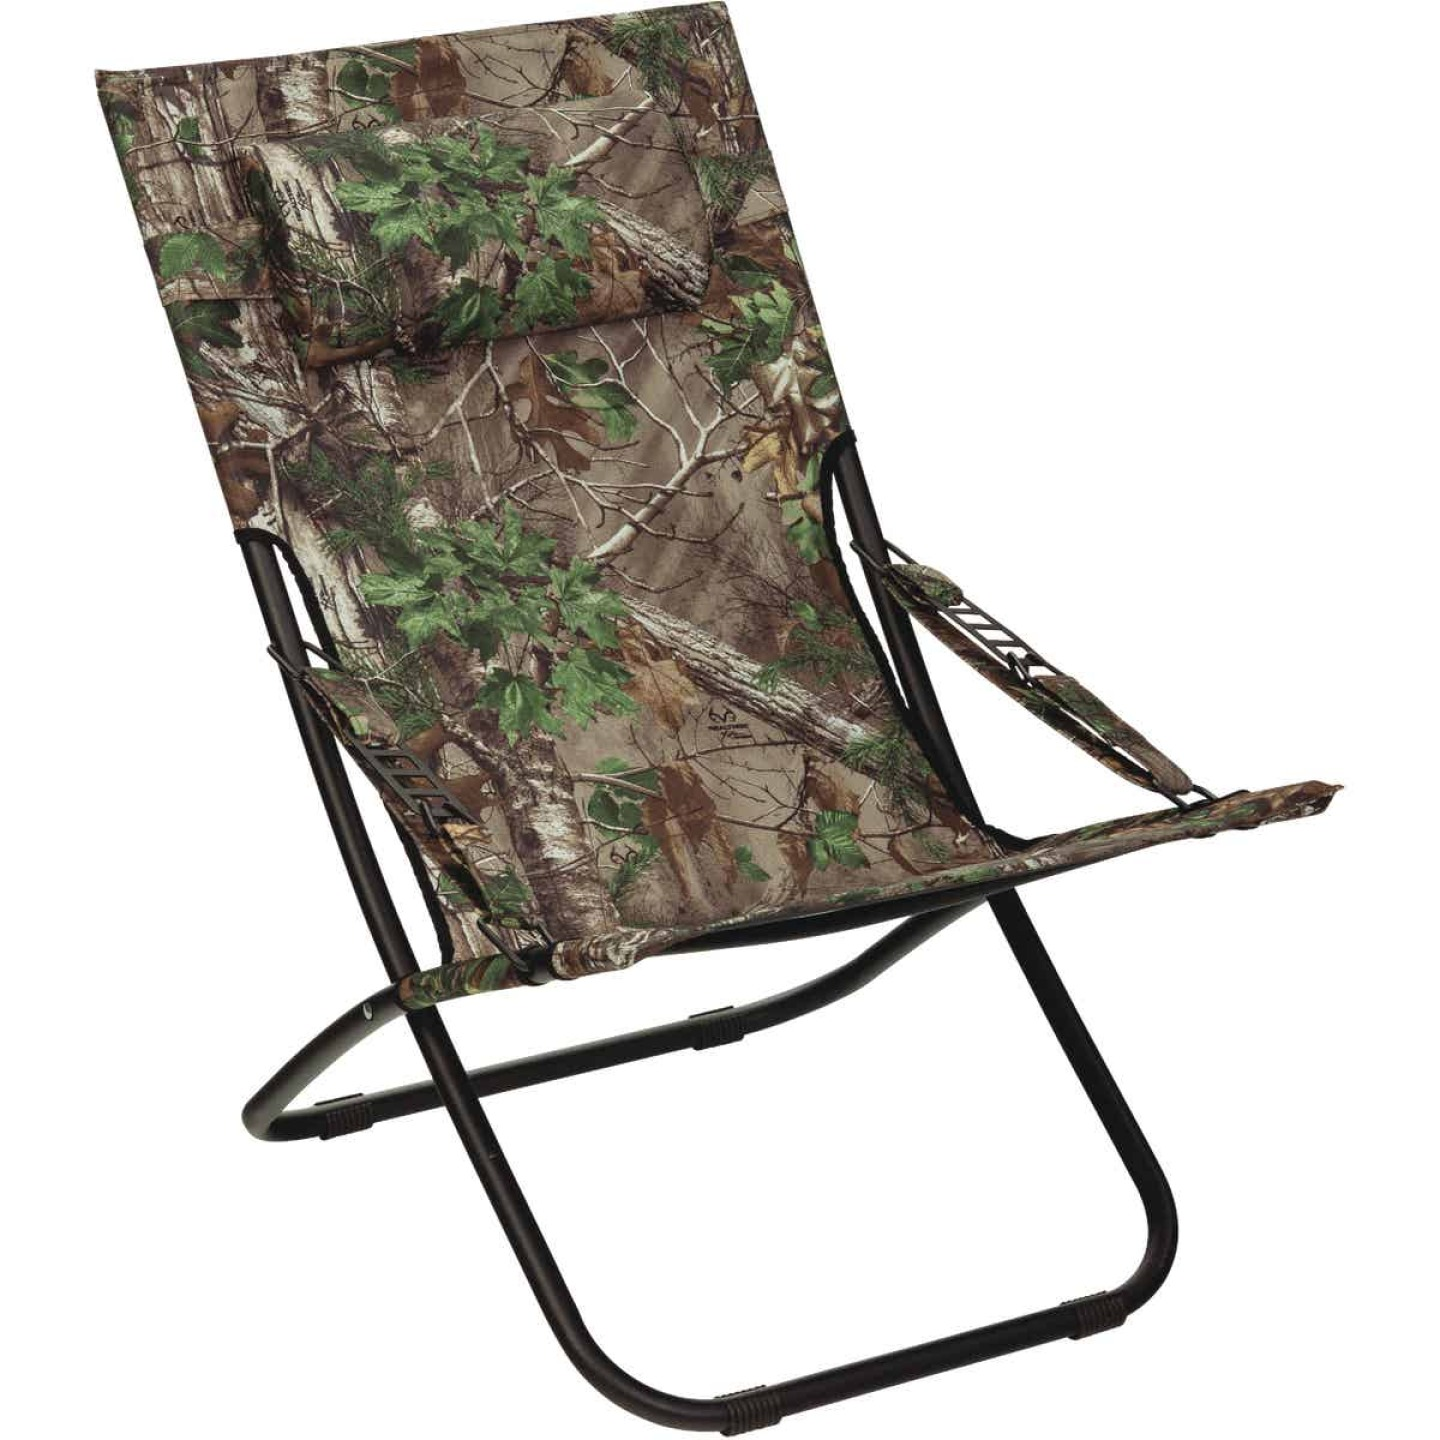 Outdoor Expressions Folding Real Tree Hammock Chair Image 1